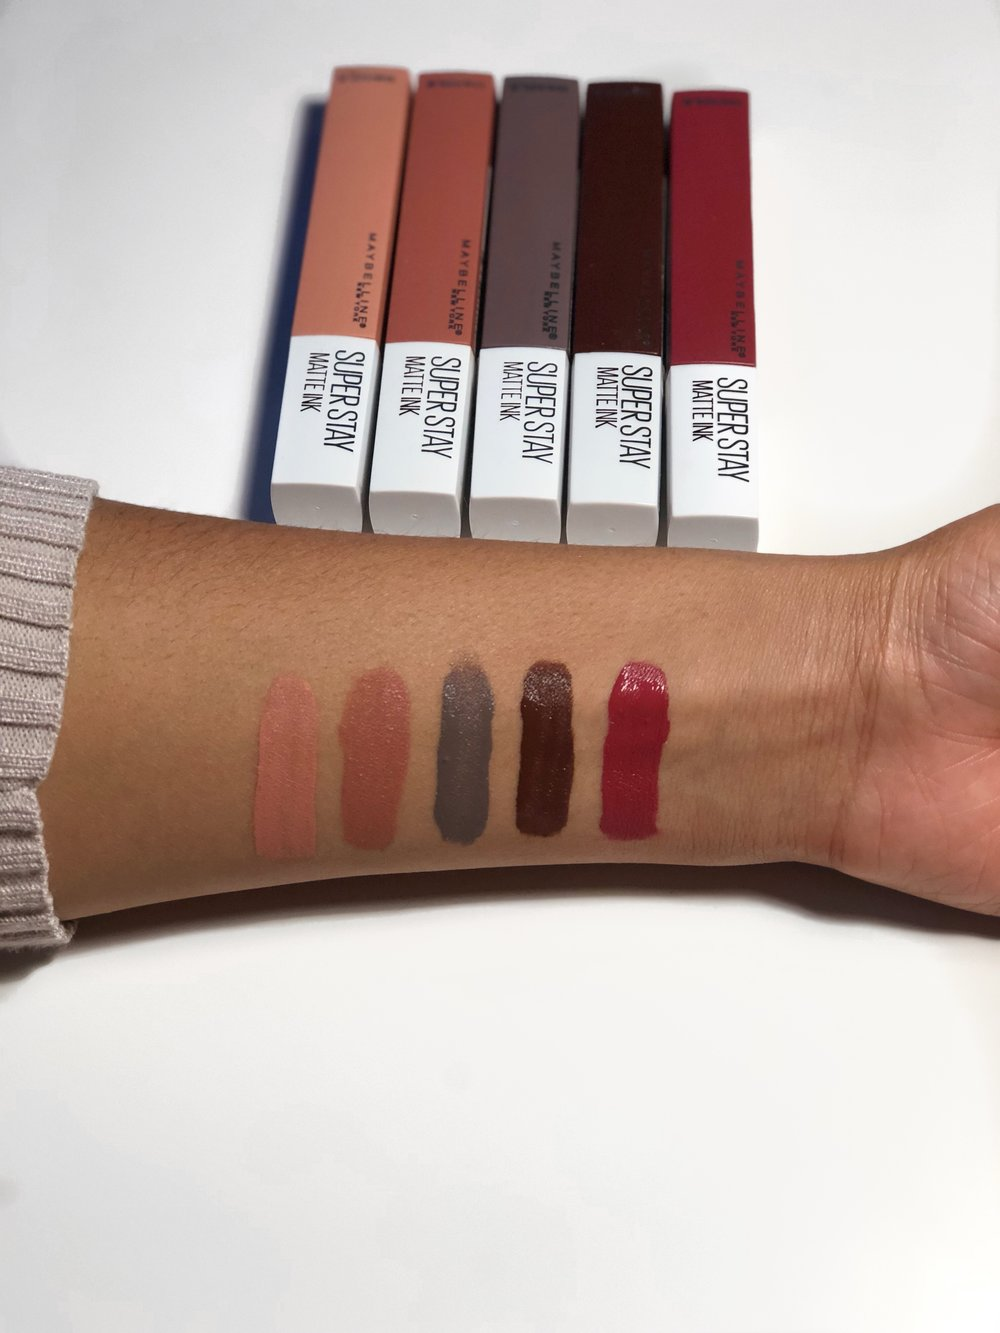 Maybelline Superstay Matte Ink Un Nude Collection Hey Raychh